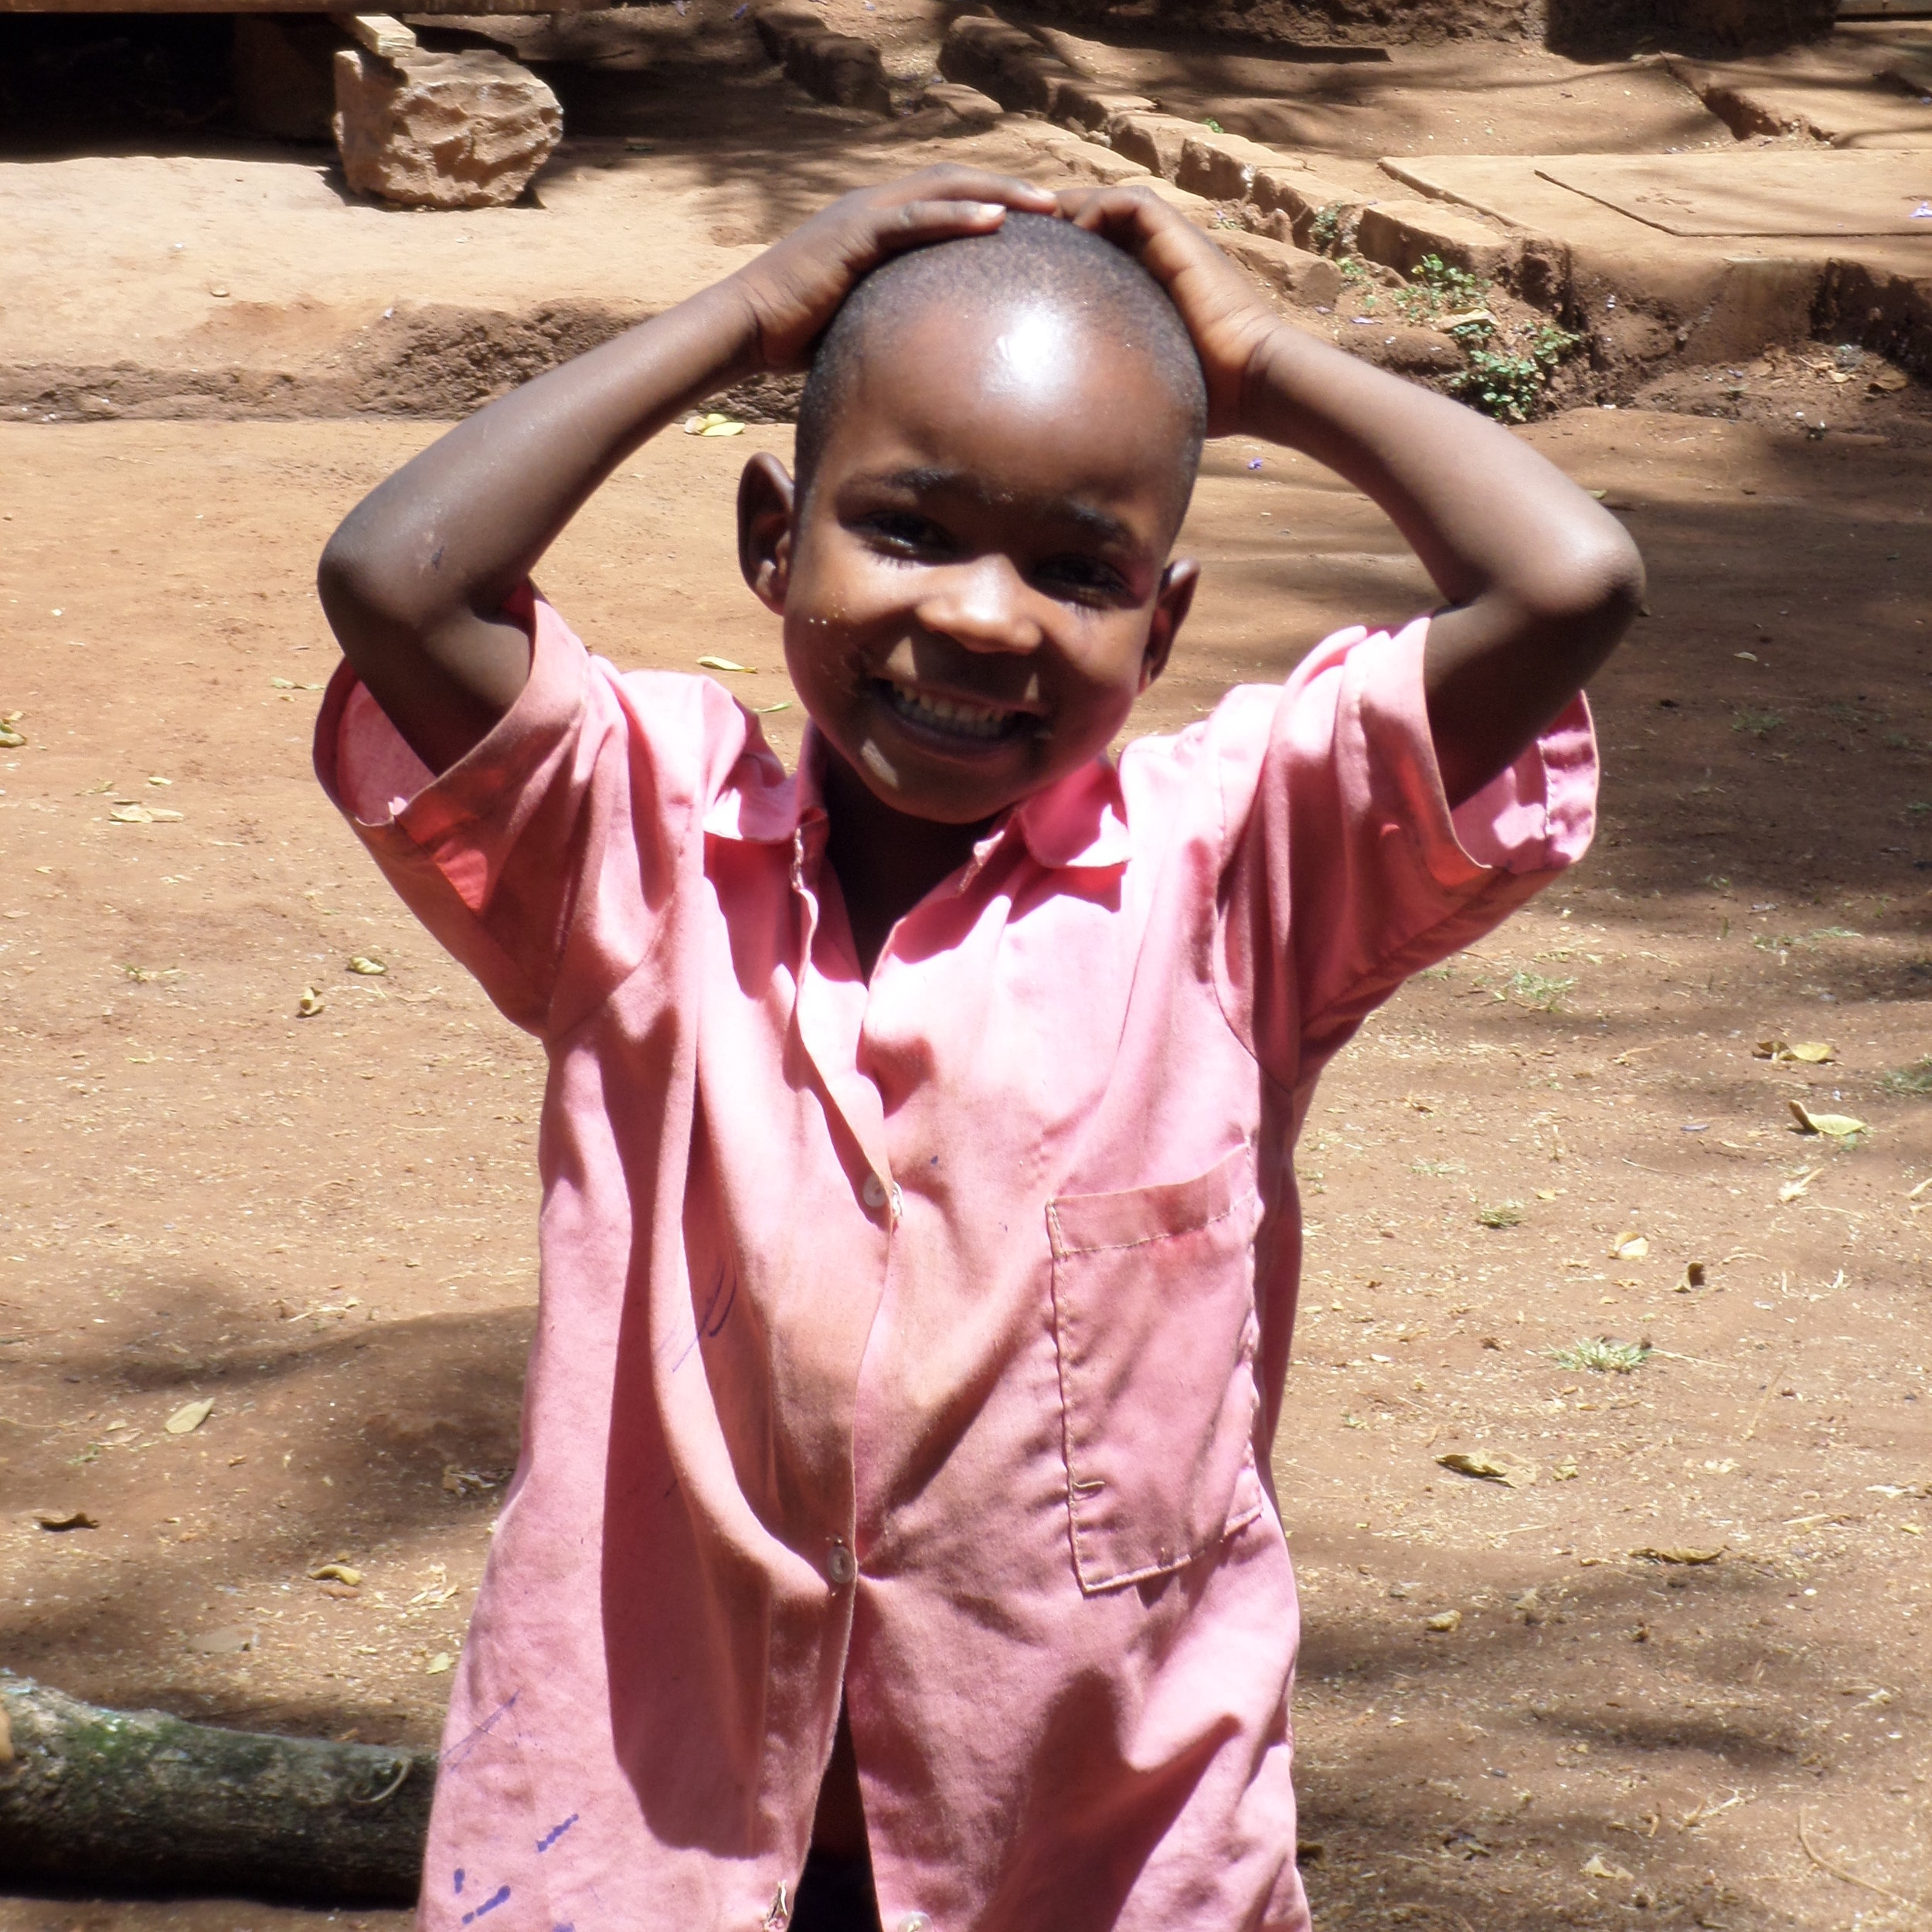 Kenyan boy in a pink shirt with his hands on his head, representing child advocacy.